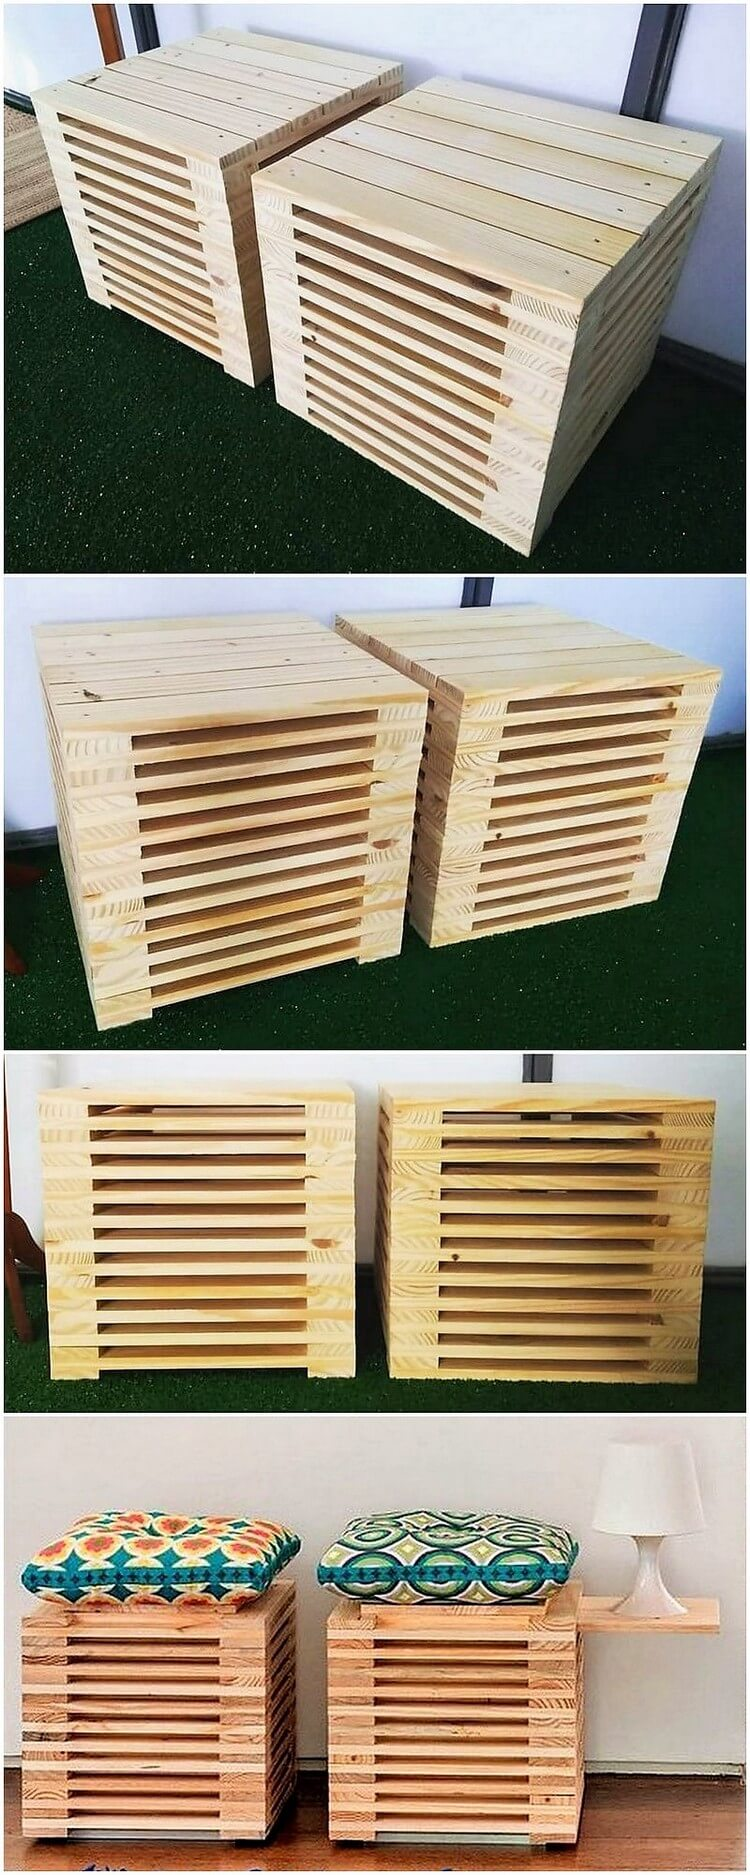 Pallet Side Tables or Seats